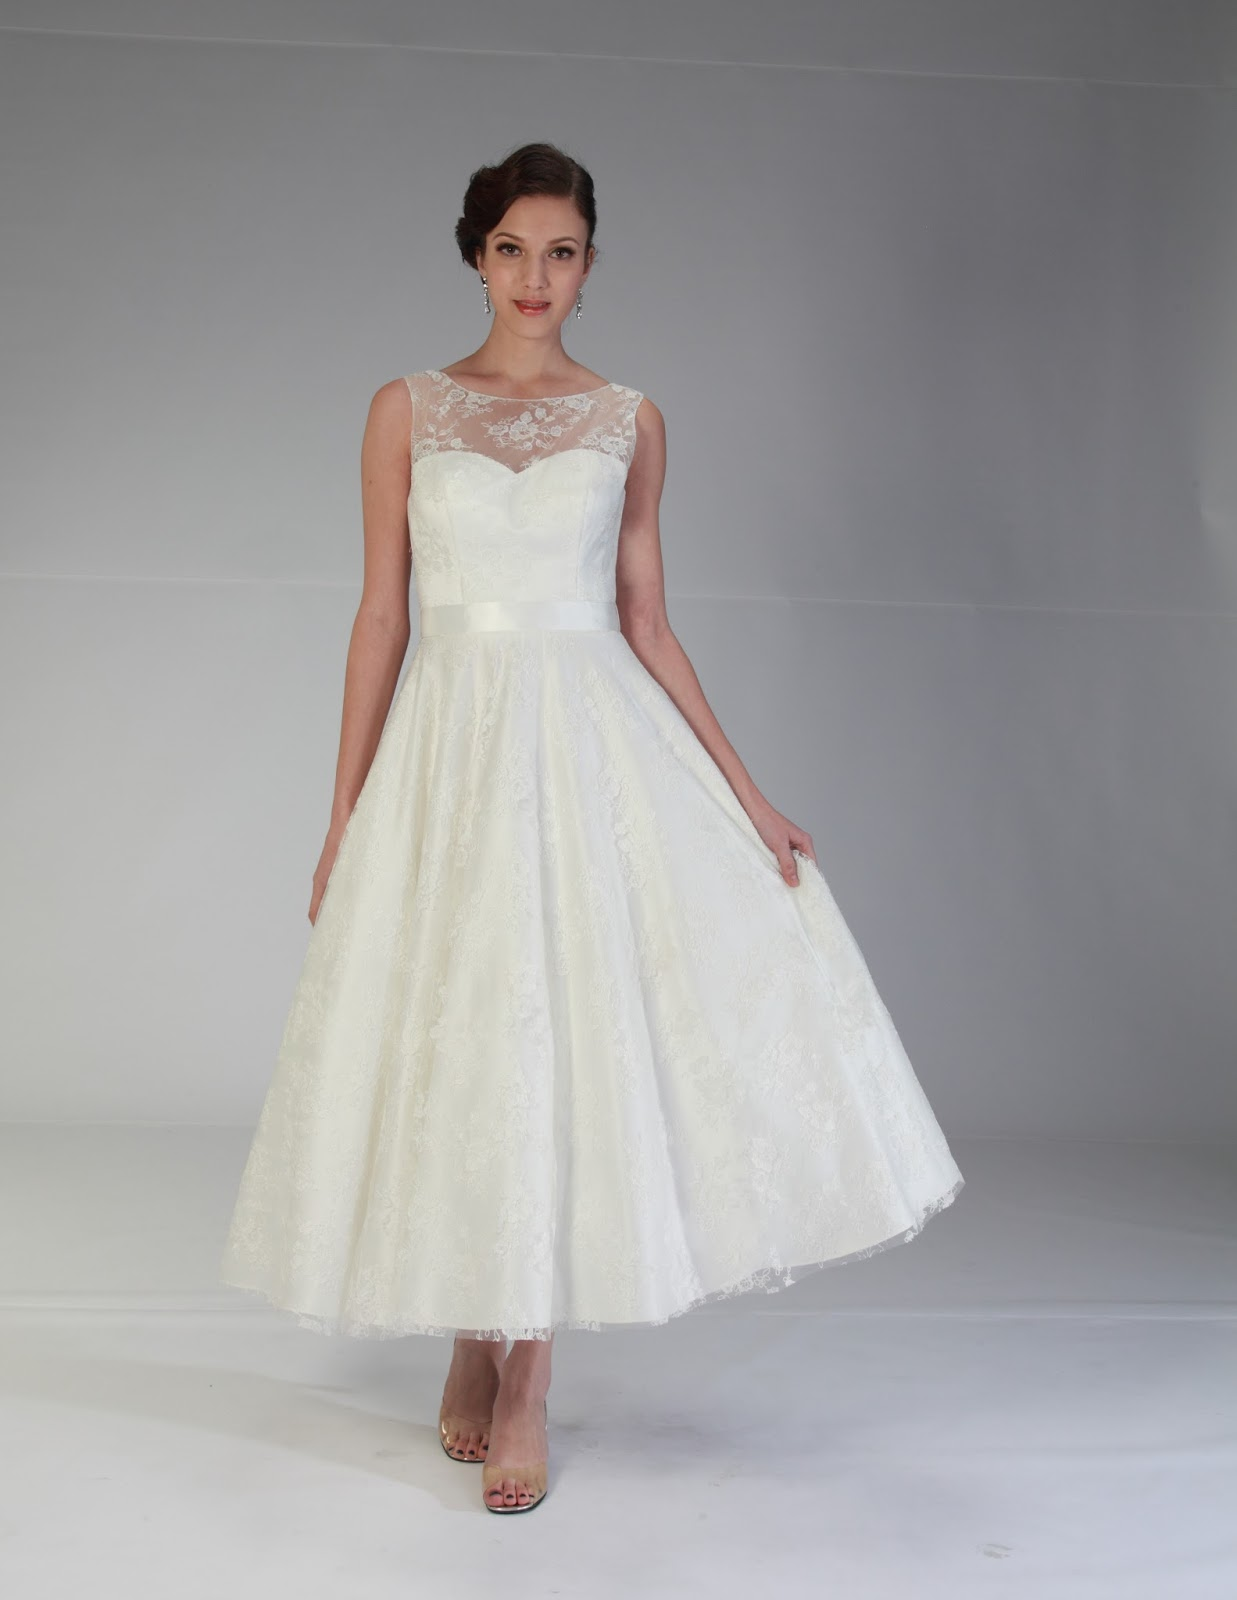 choosing the best wedding dress for a civil wedding